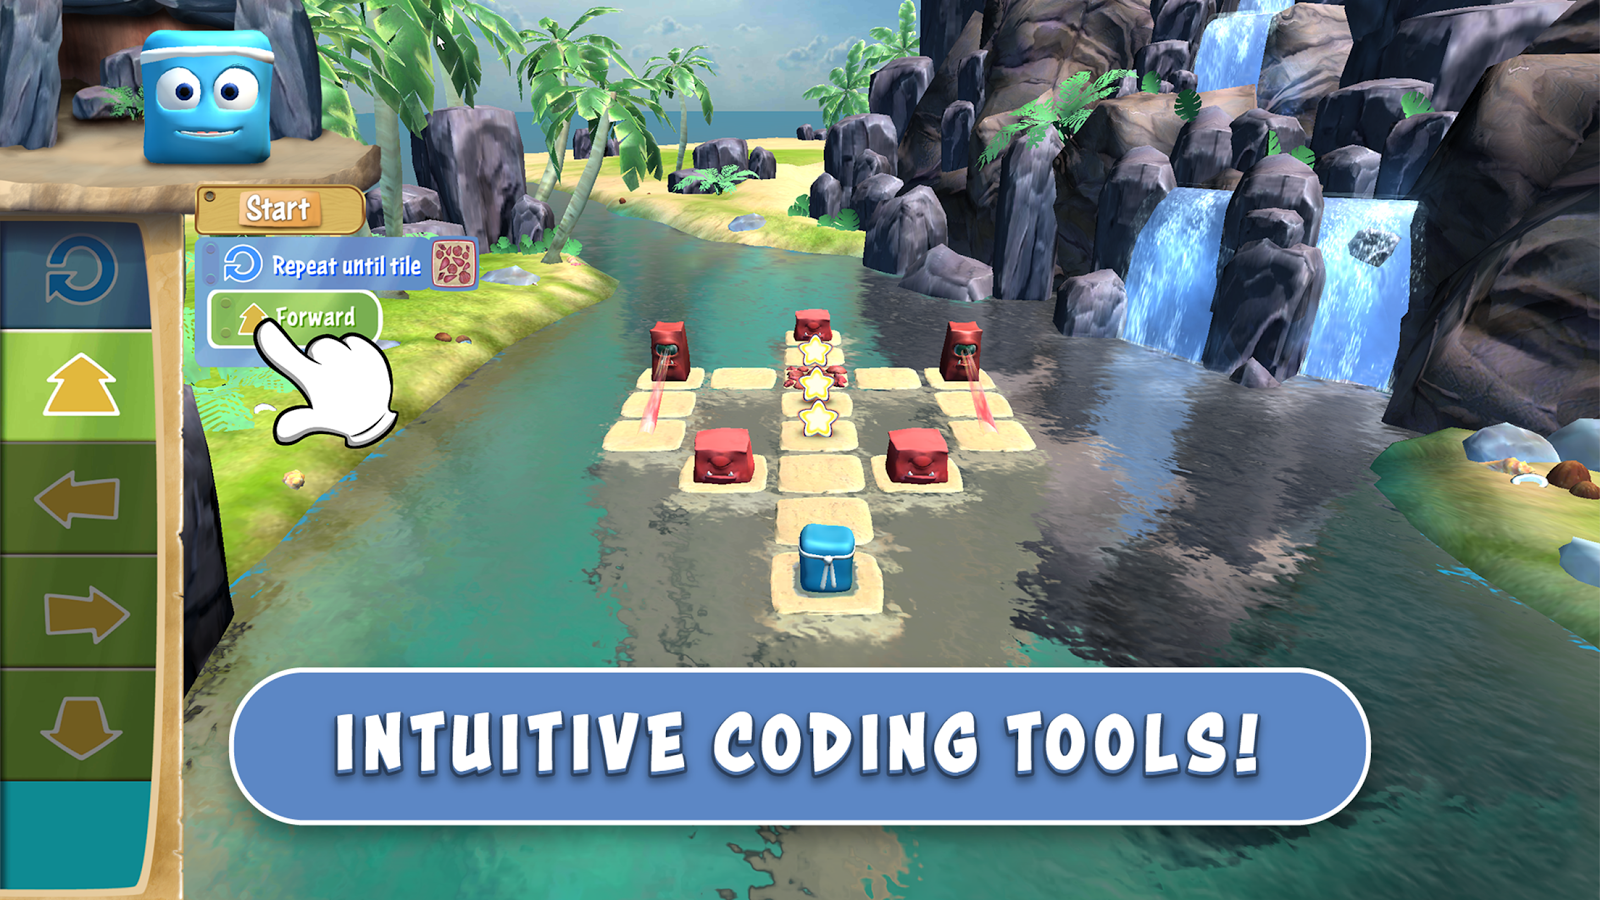 Box Island - Kids Coding Game! (Unreleased) Screenshot 6